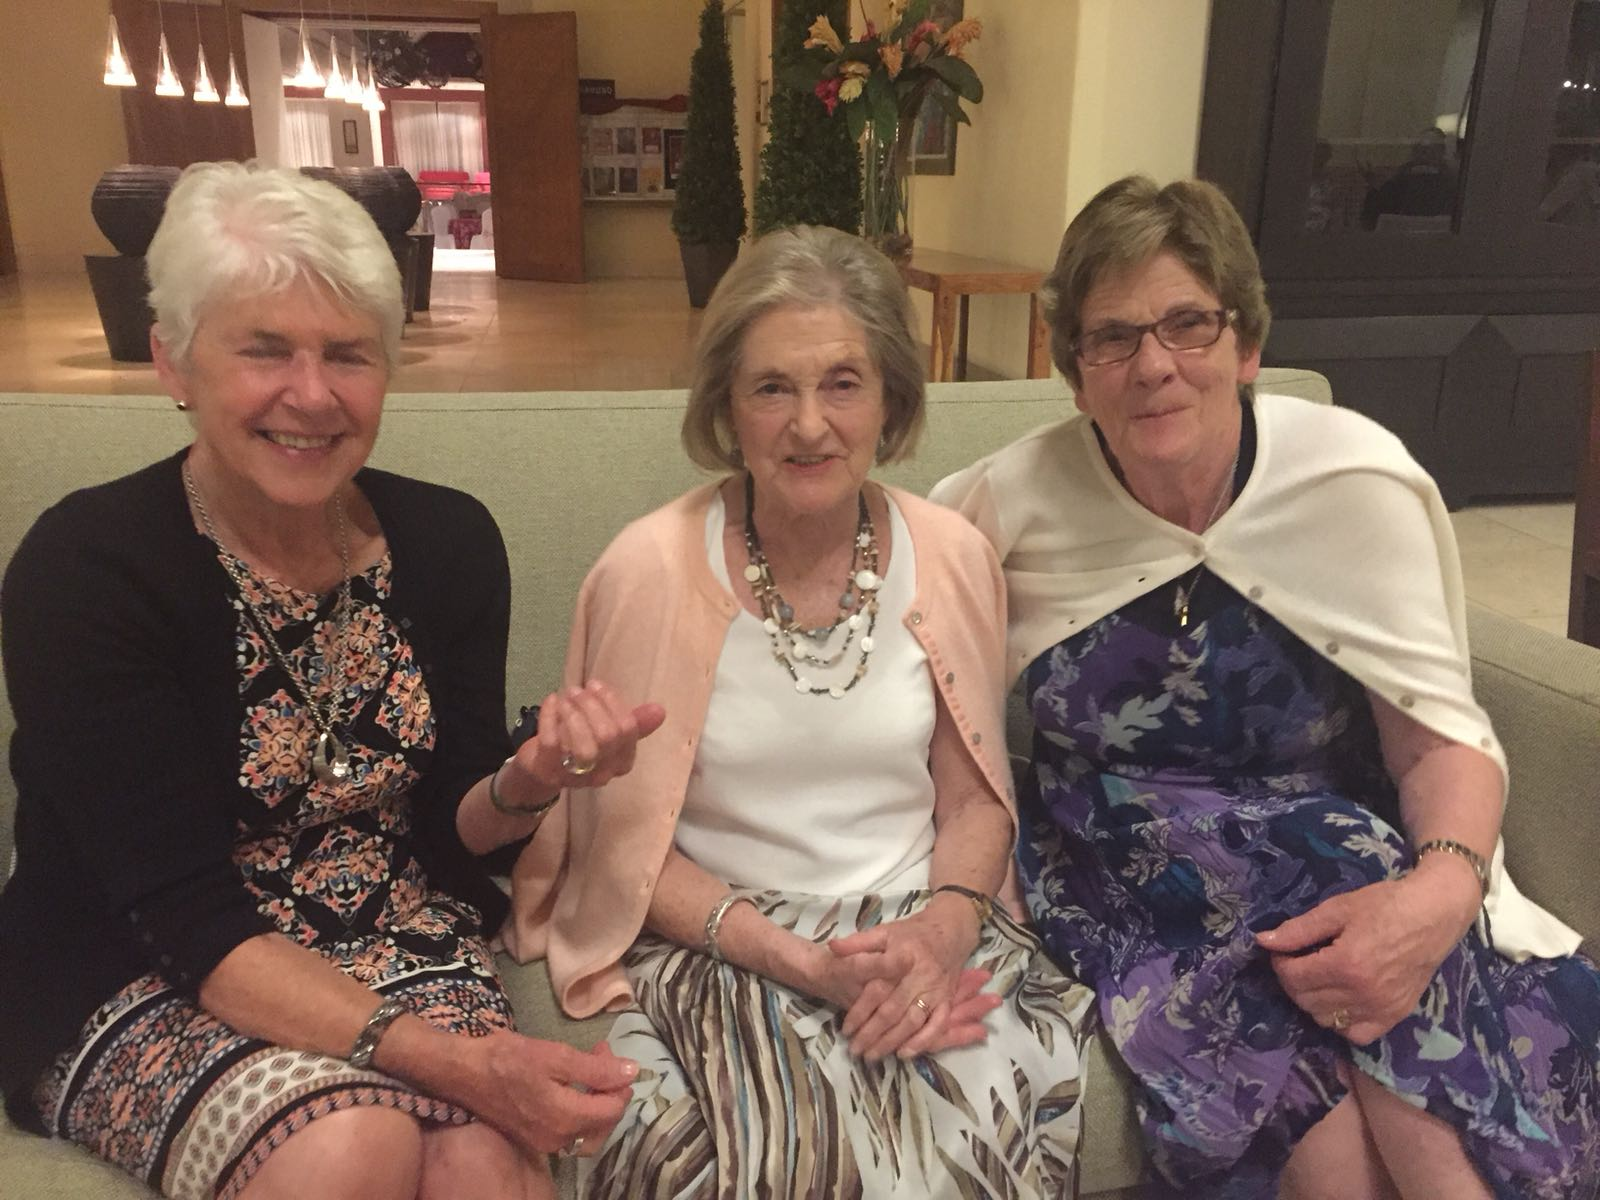 Three lovely lassies in Andalusia - May 2018